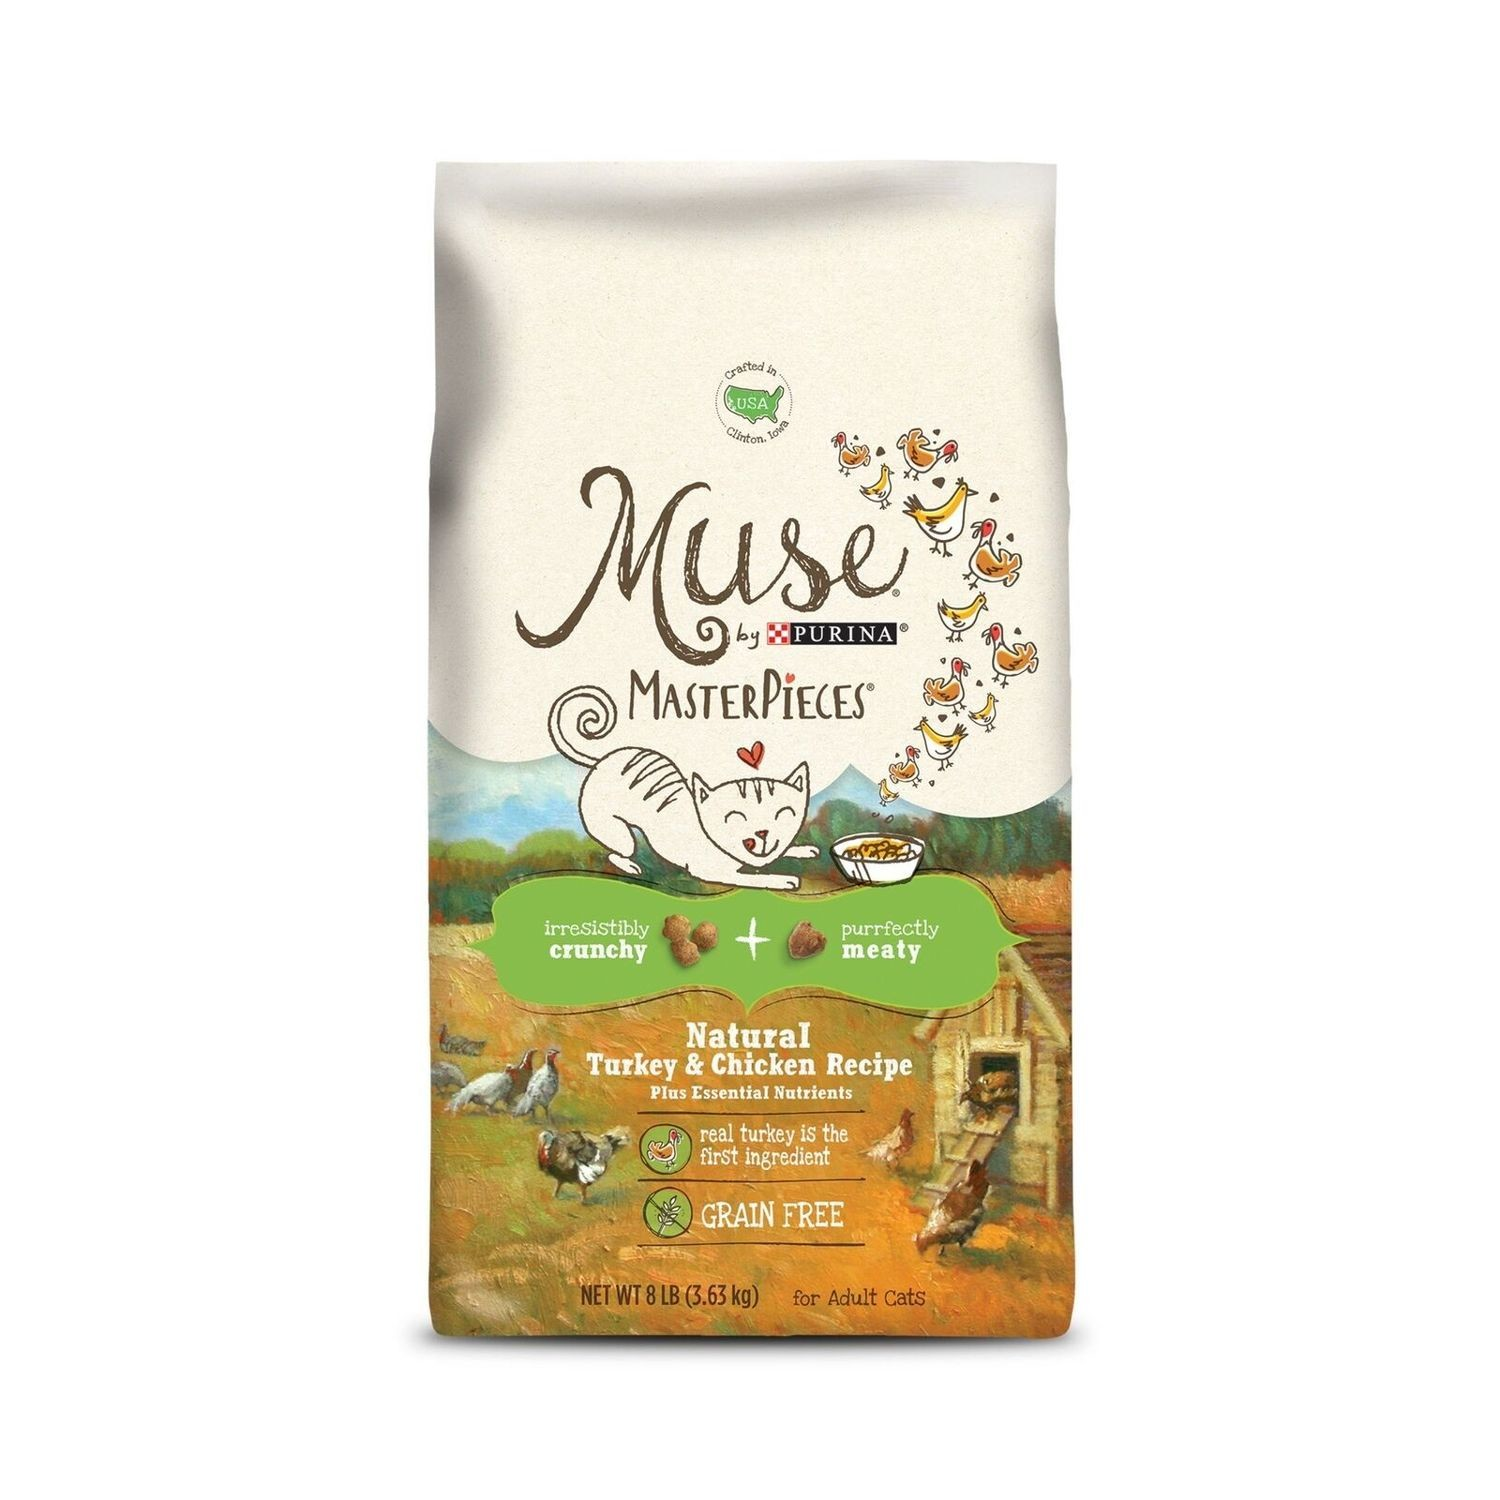 Muse Natural Grain Free Adult Dry Cat Food Dry Food With Meaty Masterpieces w/Turkey & Chicken 8 lbs. (5/19) (A.J3)